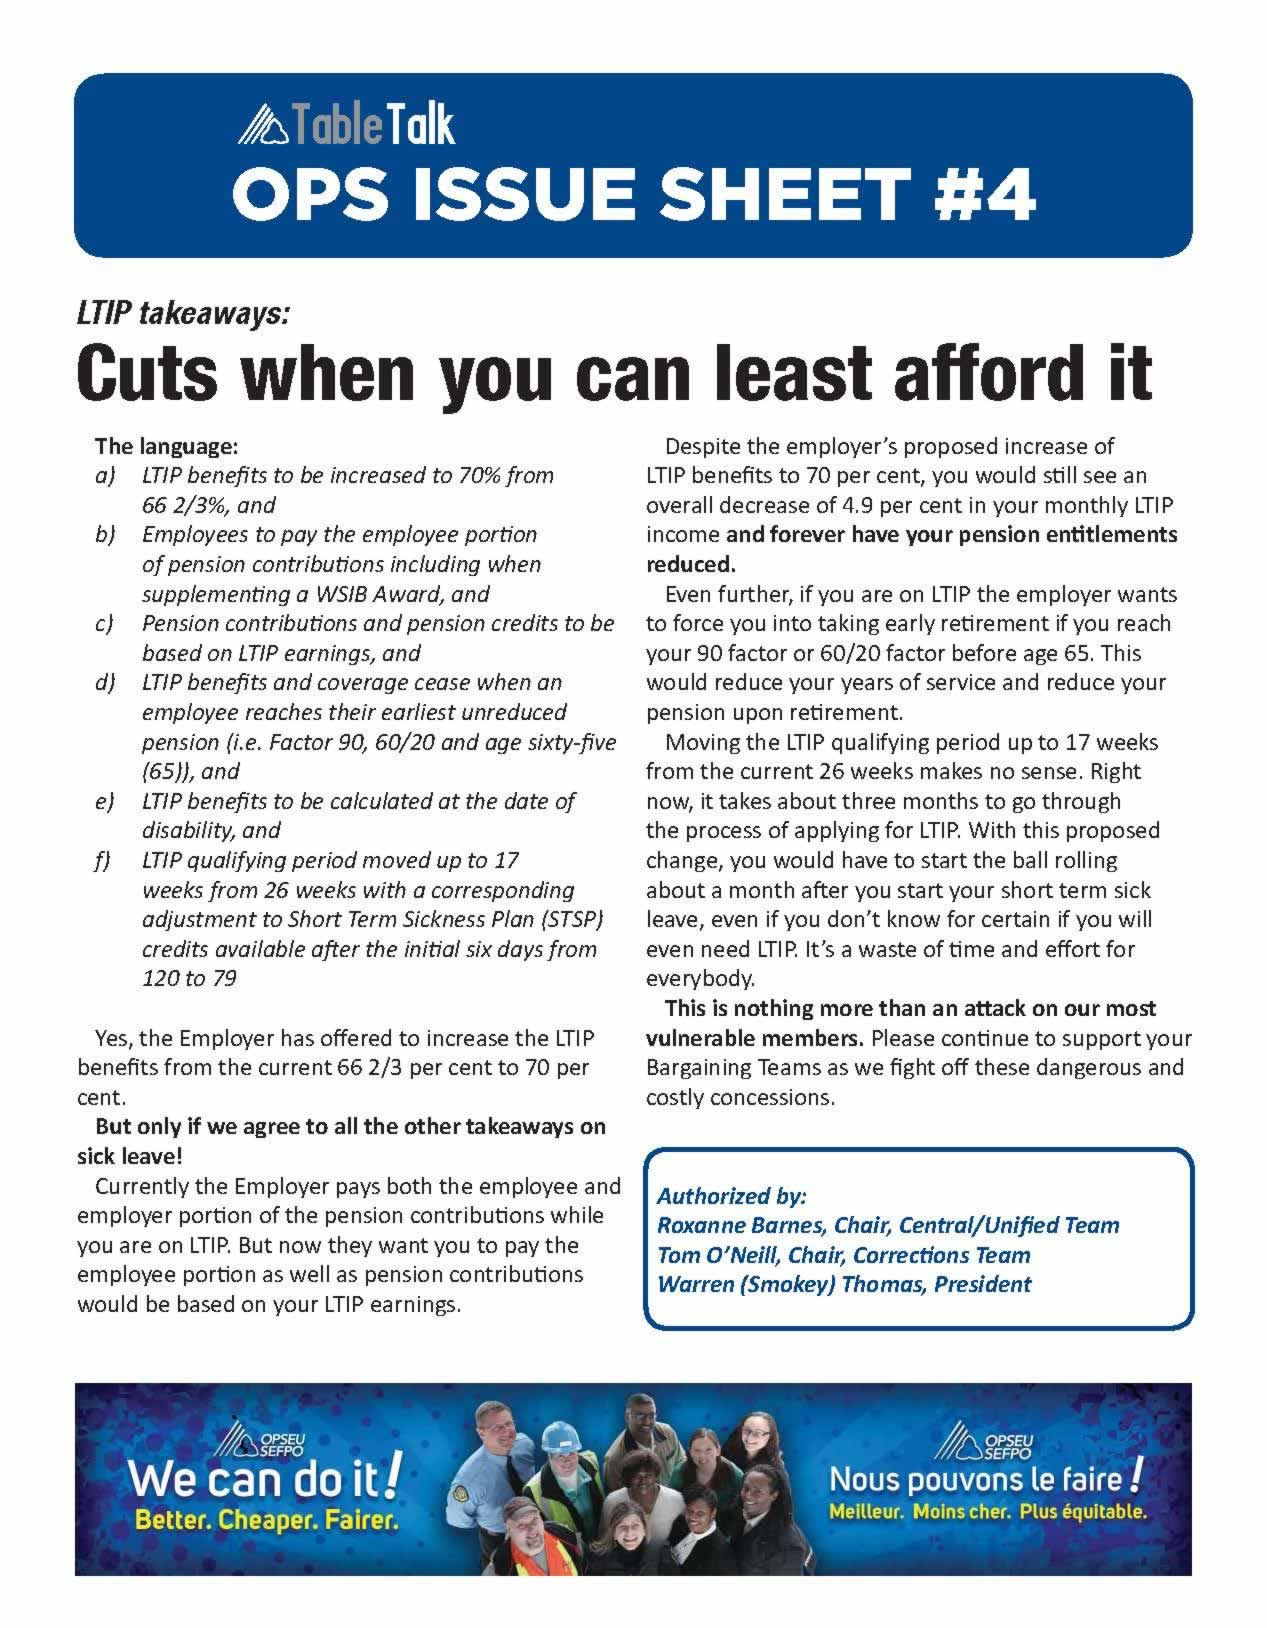 OPS Issue Sheet. LTIP takeaways: Cuts when you can least afford it